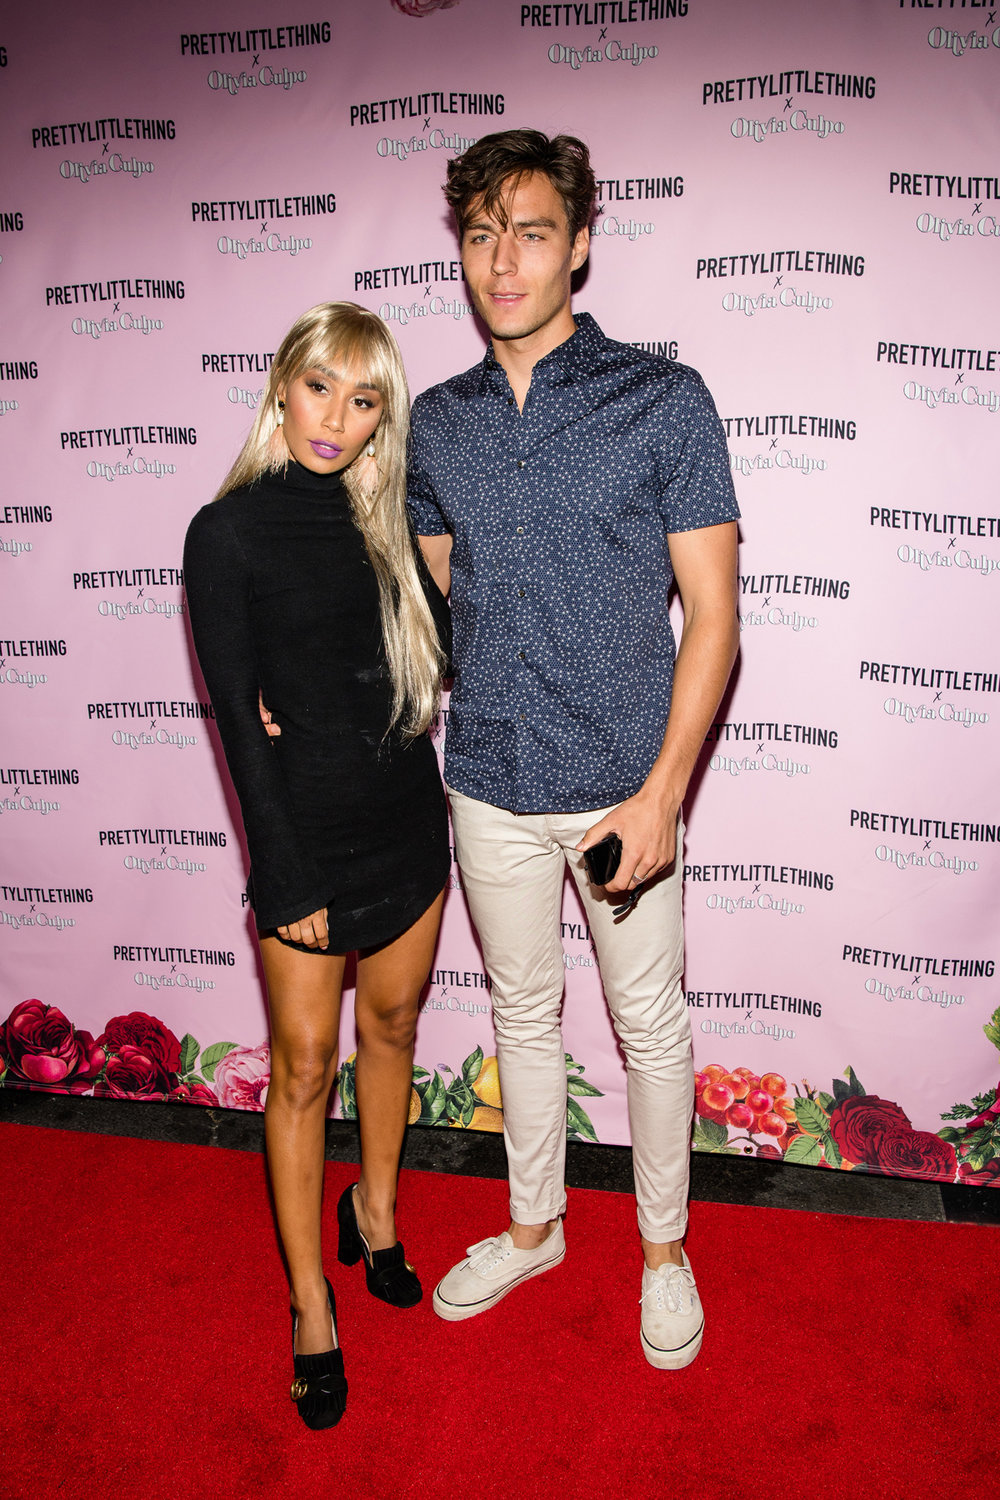 PrettyLittleThing PLT X Olivia Culpo Collection  Celebrity Launch Party Eva Gutowski 2.jpg